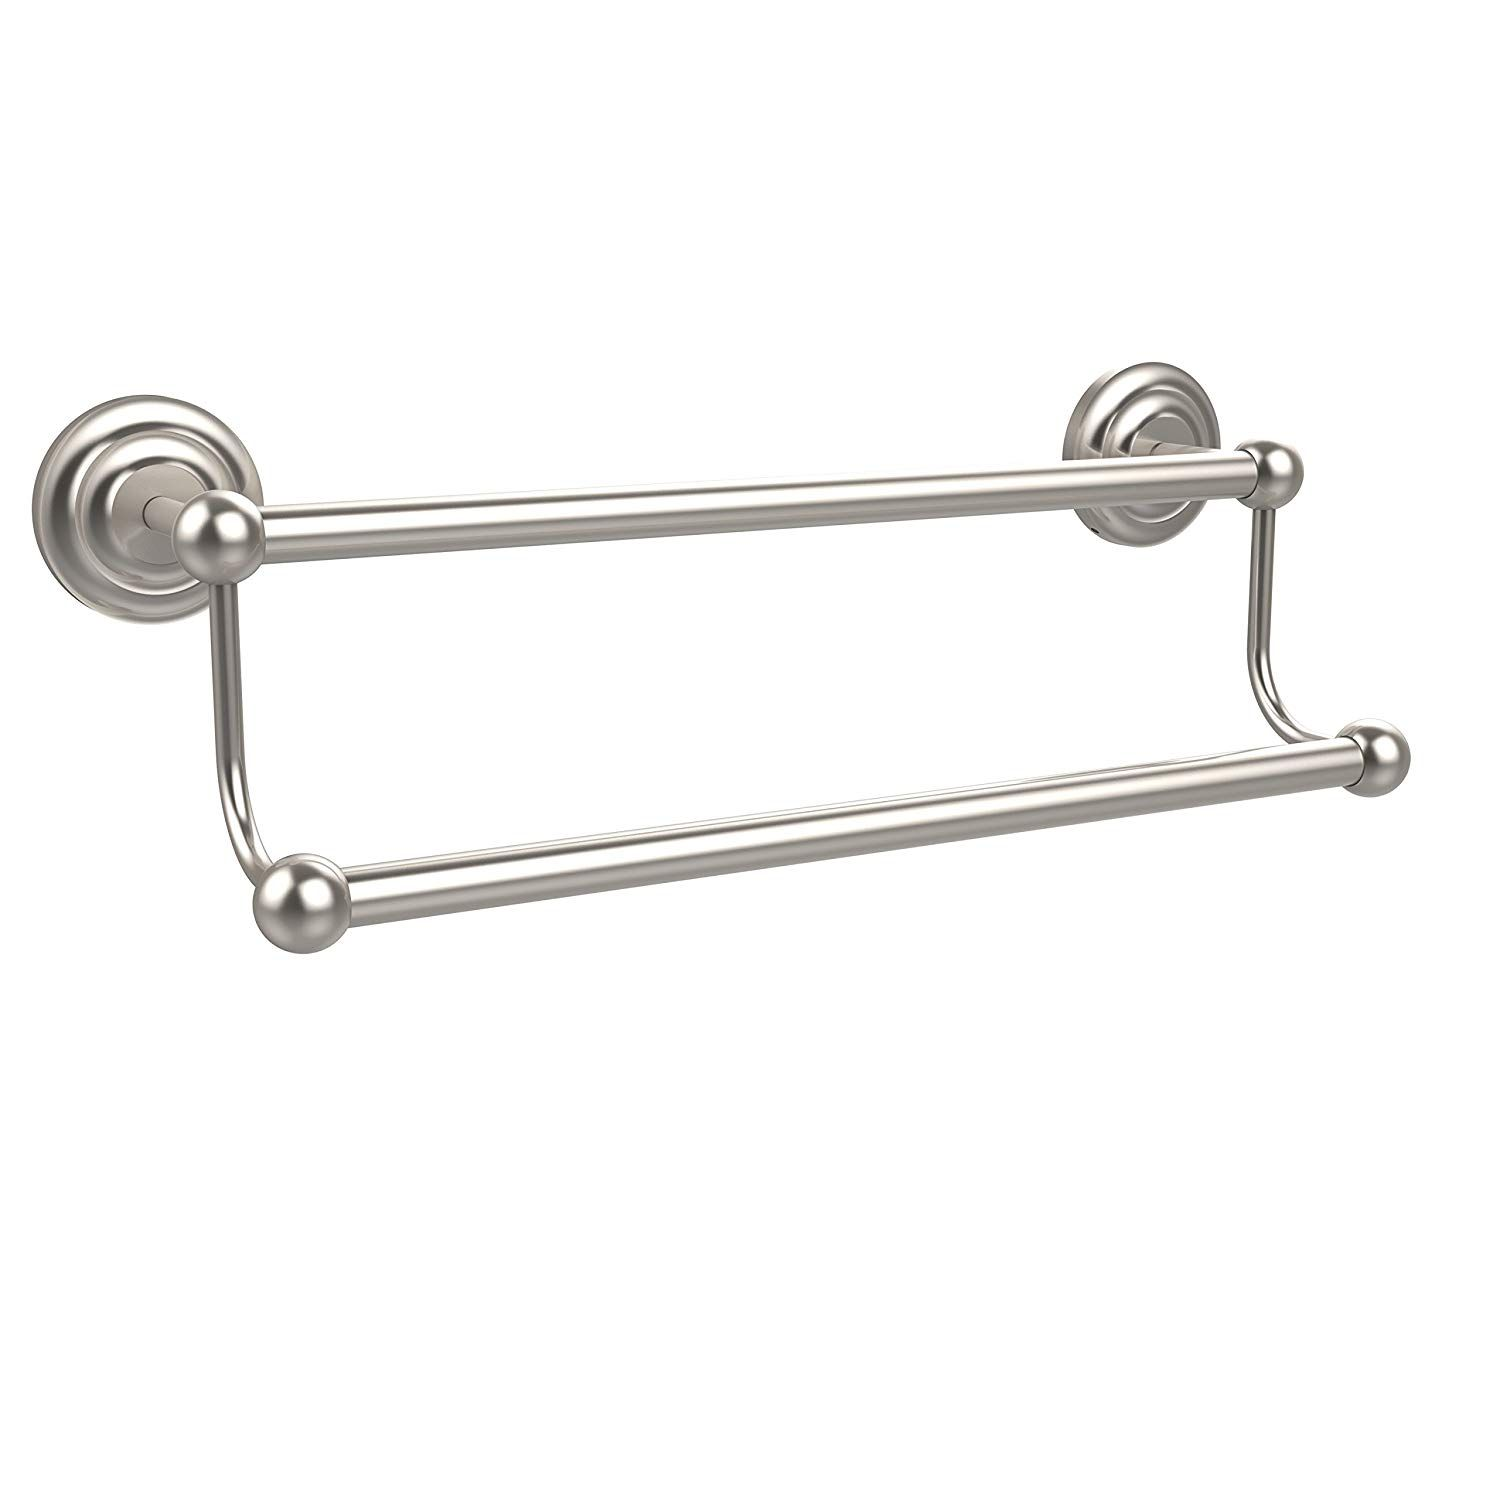 Allied Brass Pqn 72 36 Sn 36 Inch Double Towel Bar Satin Nickel Visit The Image Link More Details This Is An Affi Towel Bar Polished Nickel Allied Brass